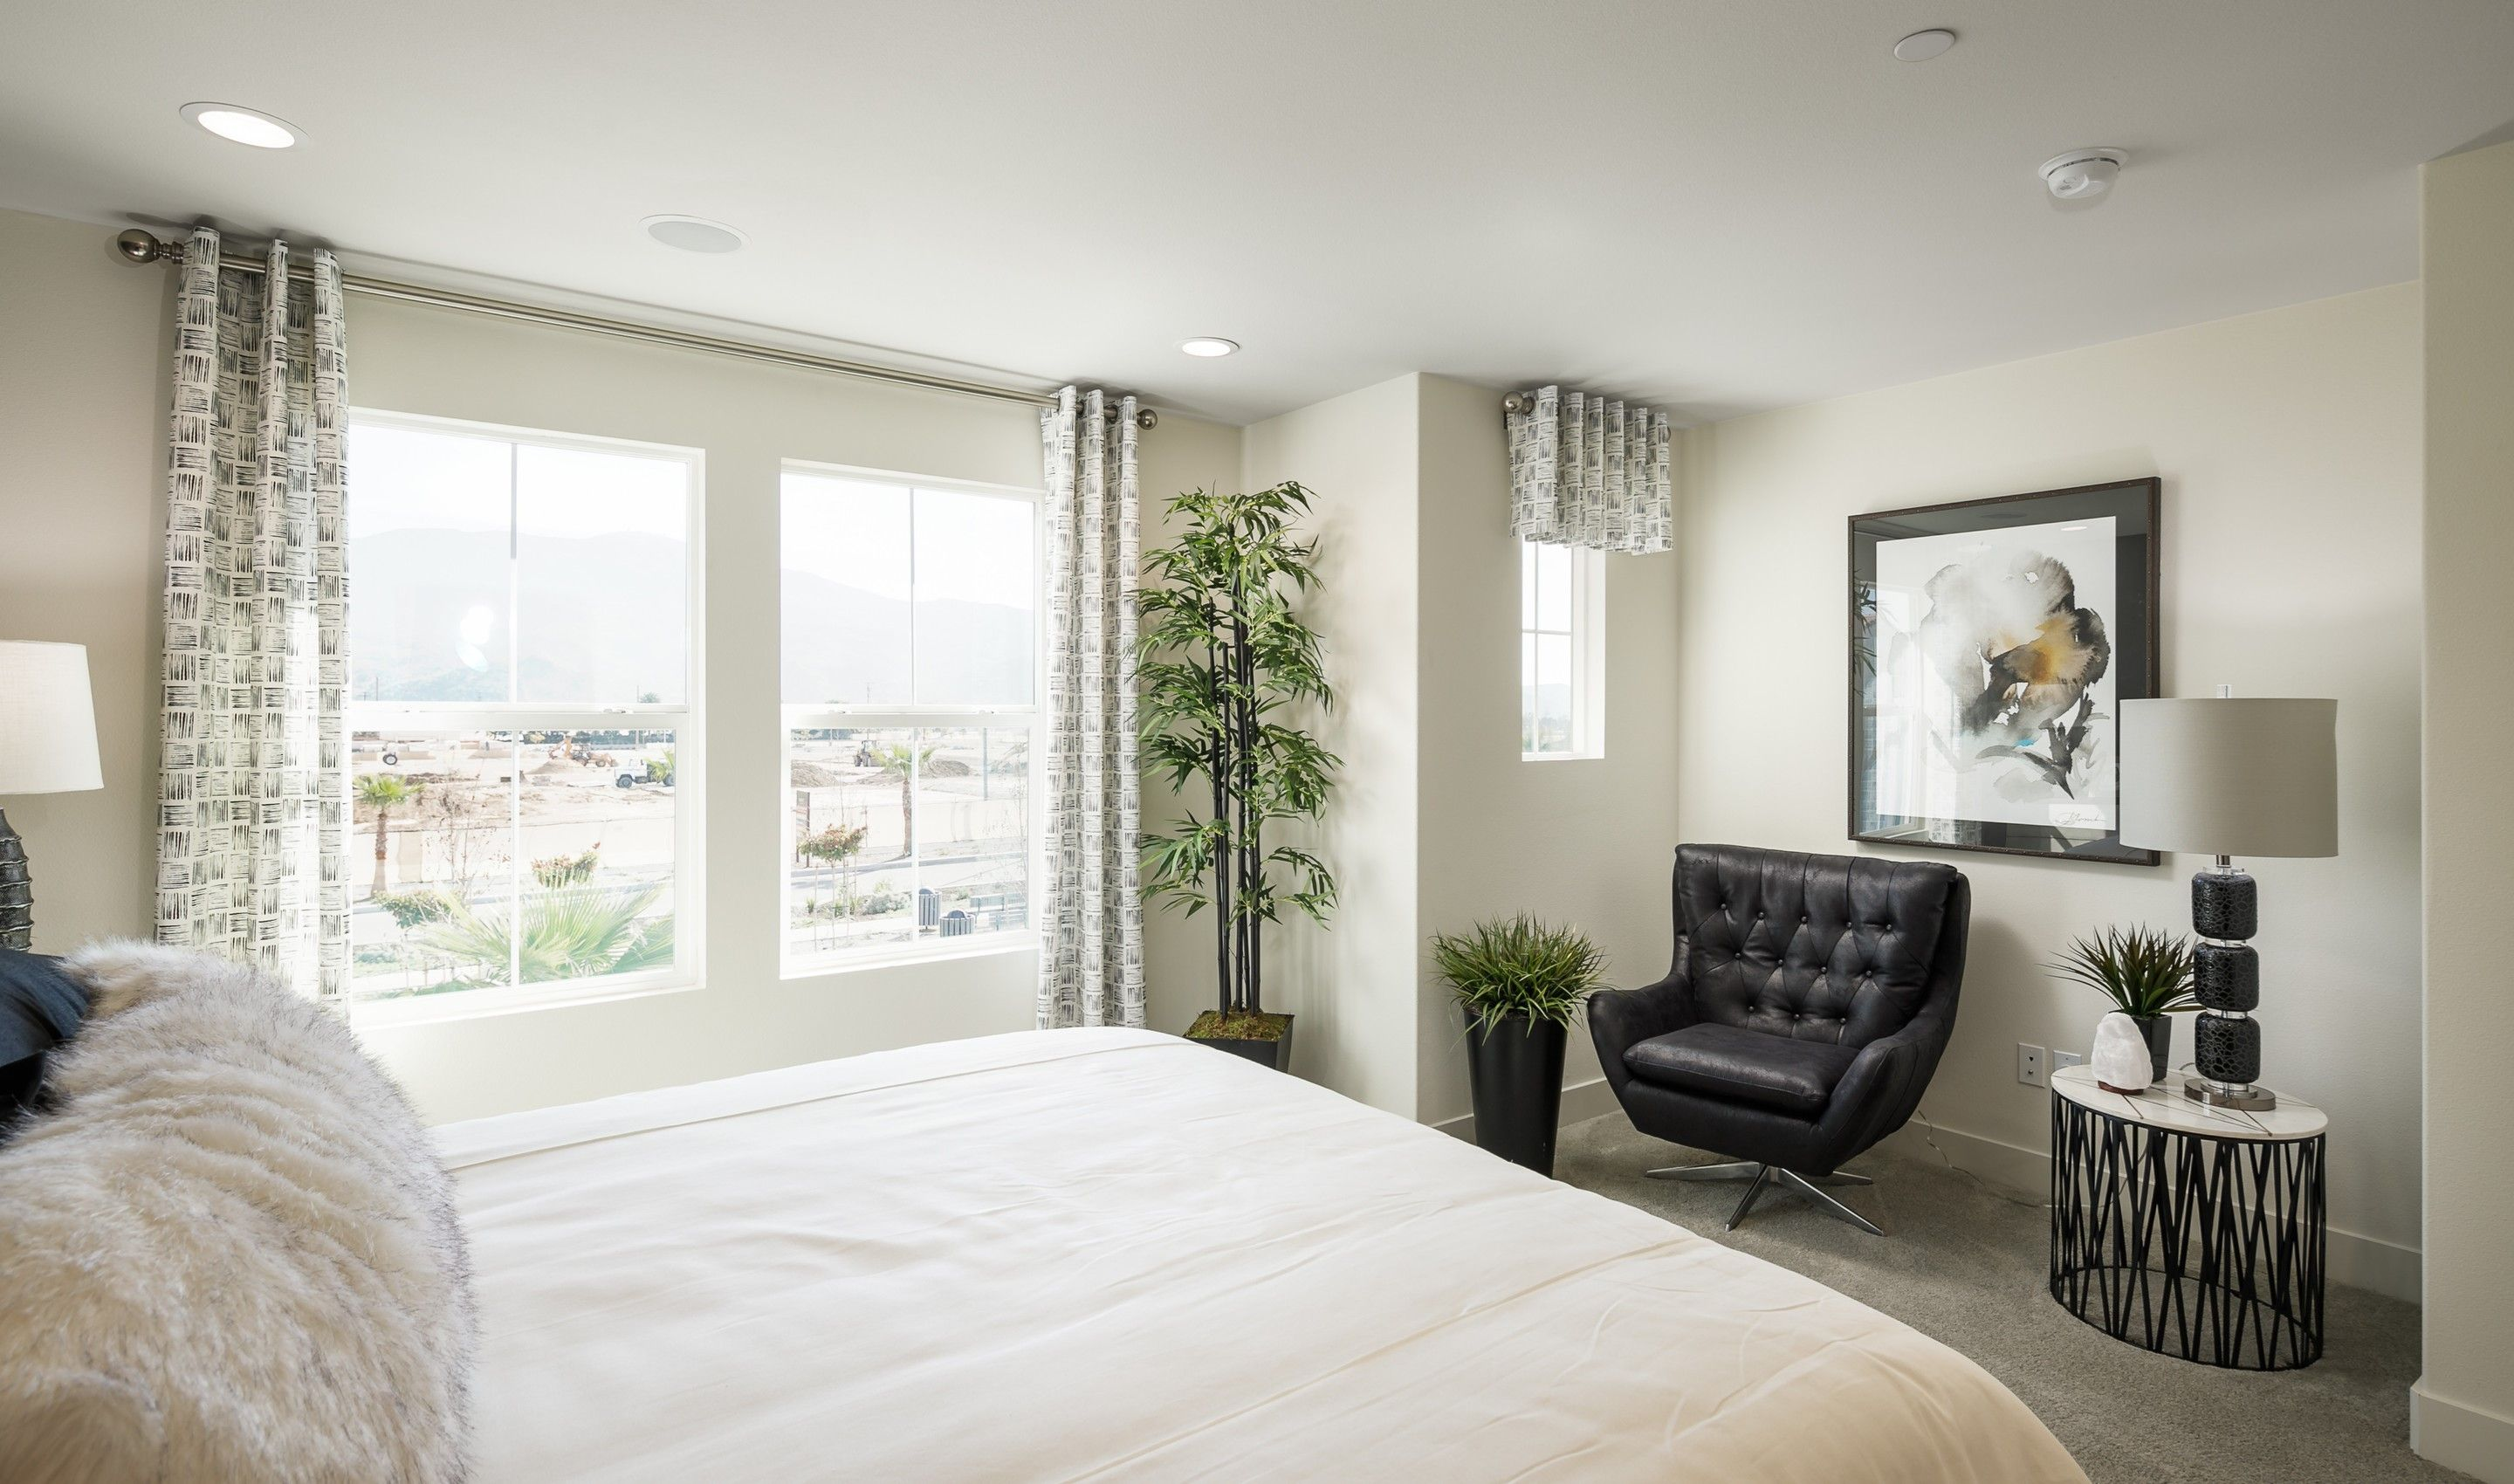 Bedroom featured in the Golden By K. Hovnanian® Homes in Ventura, CA